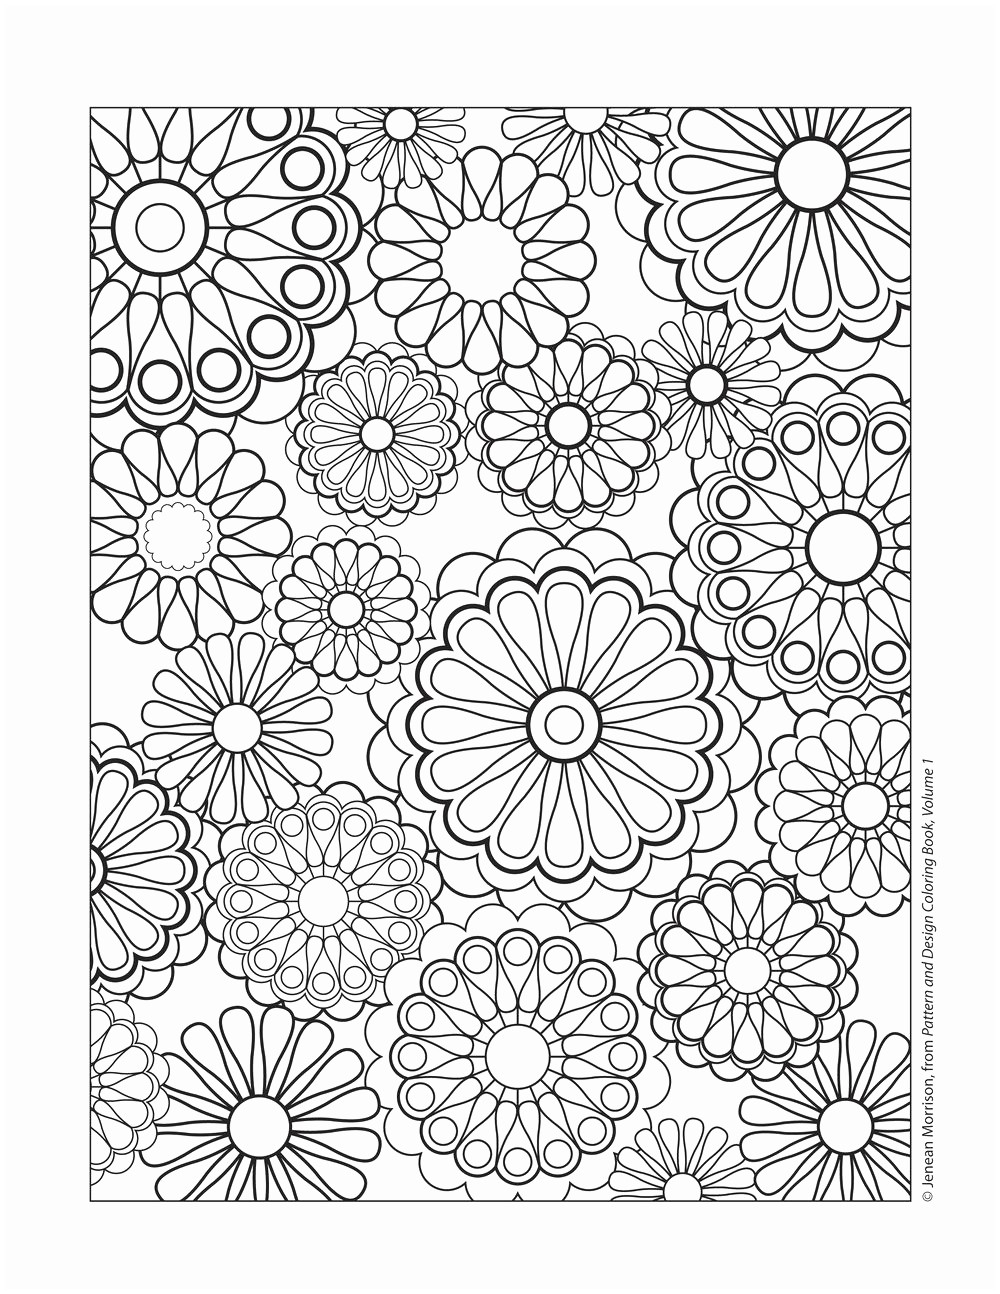 1b coloring pages | 27 Coloring Games Pages Download - Coloring Sheets